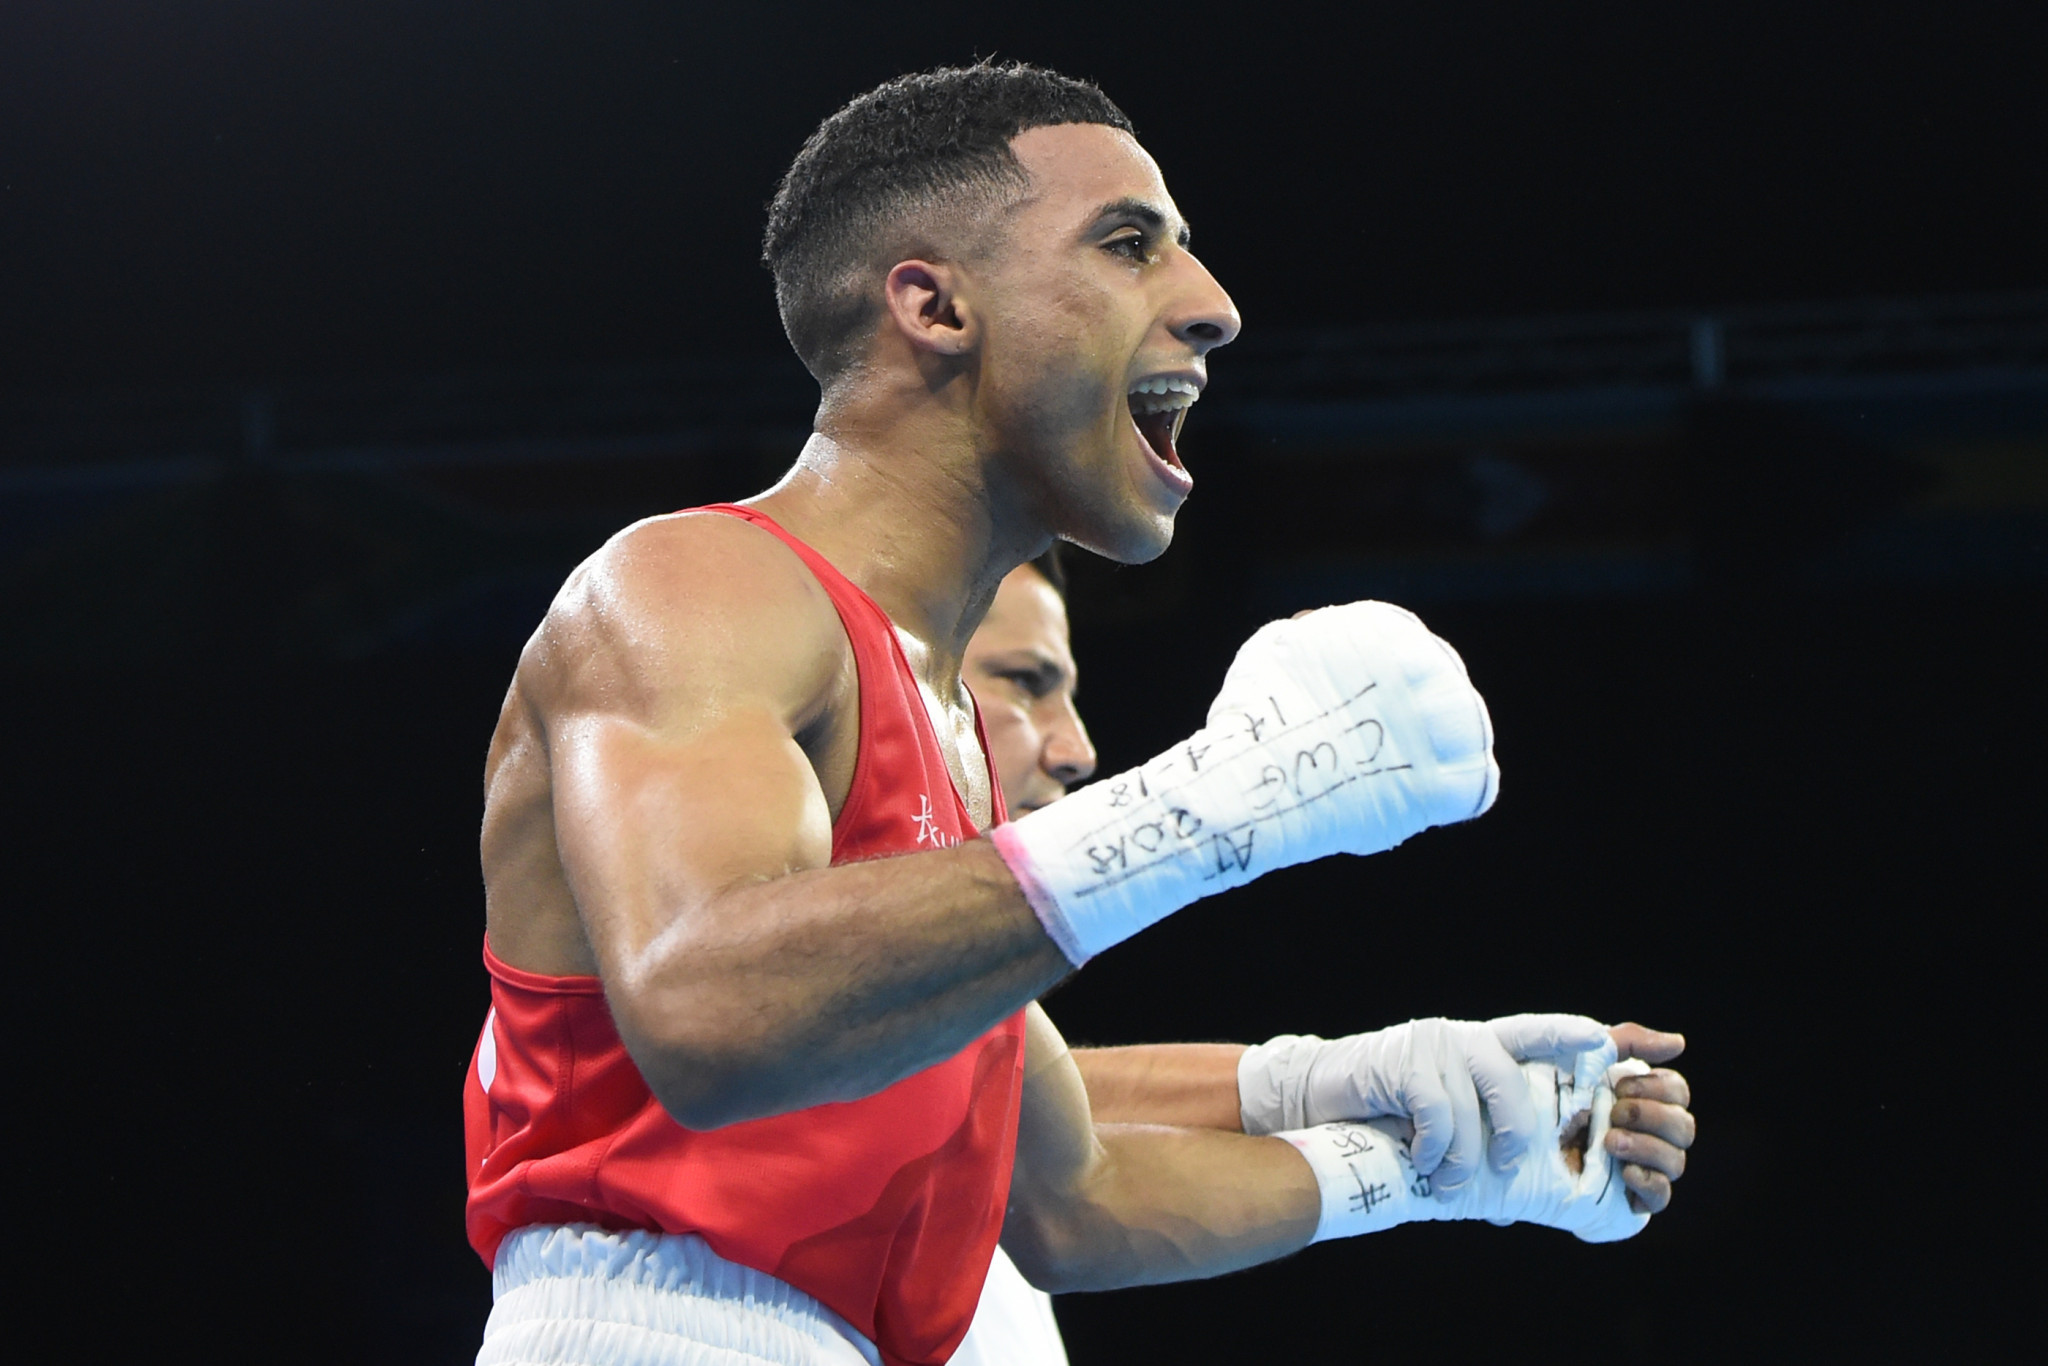 England's Galal Yafai tasted victory in the men's 46kg to 49kg category ©Getty Images